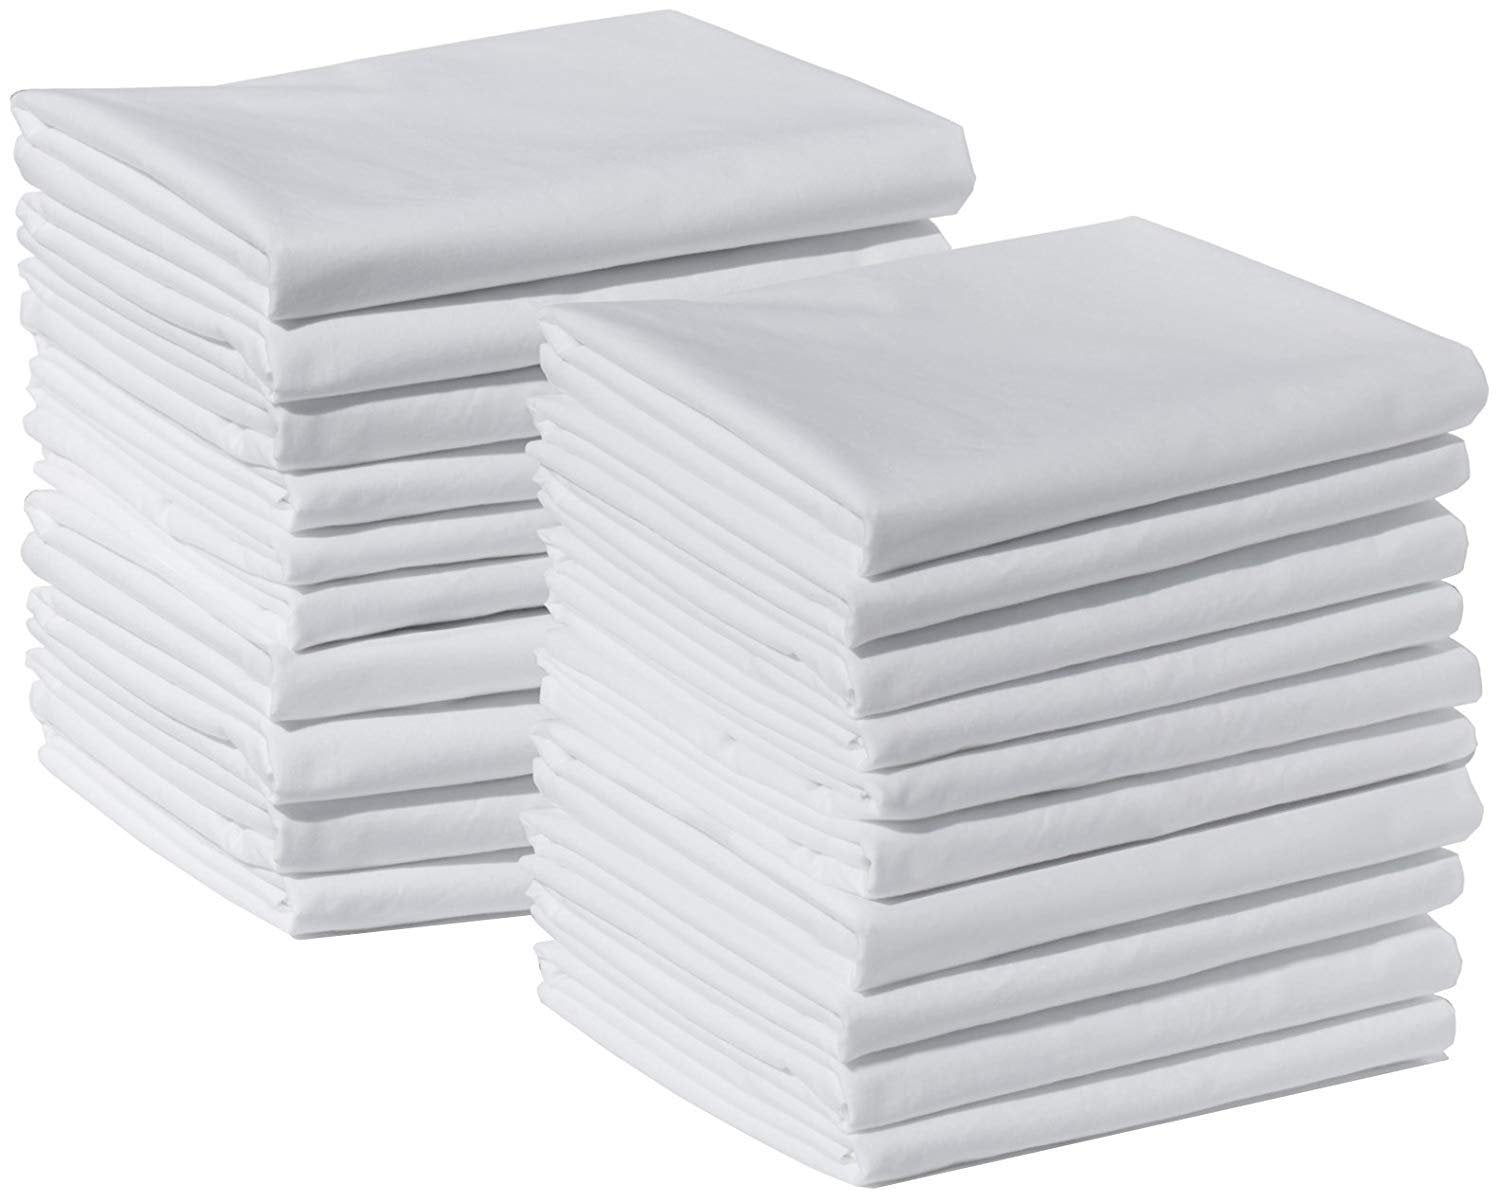 100% Cotton White T220 Percale Wholesale Bulk Pillowcases for Tie-Dying, Silk Screening, Hotels, Crafts, Camps, Parties, Physical Therapy